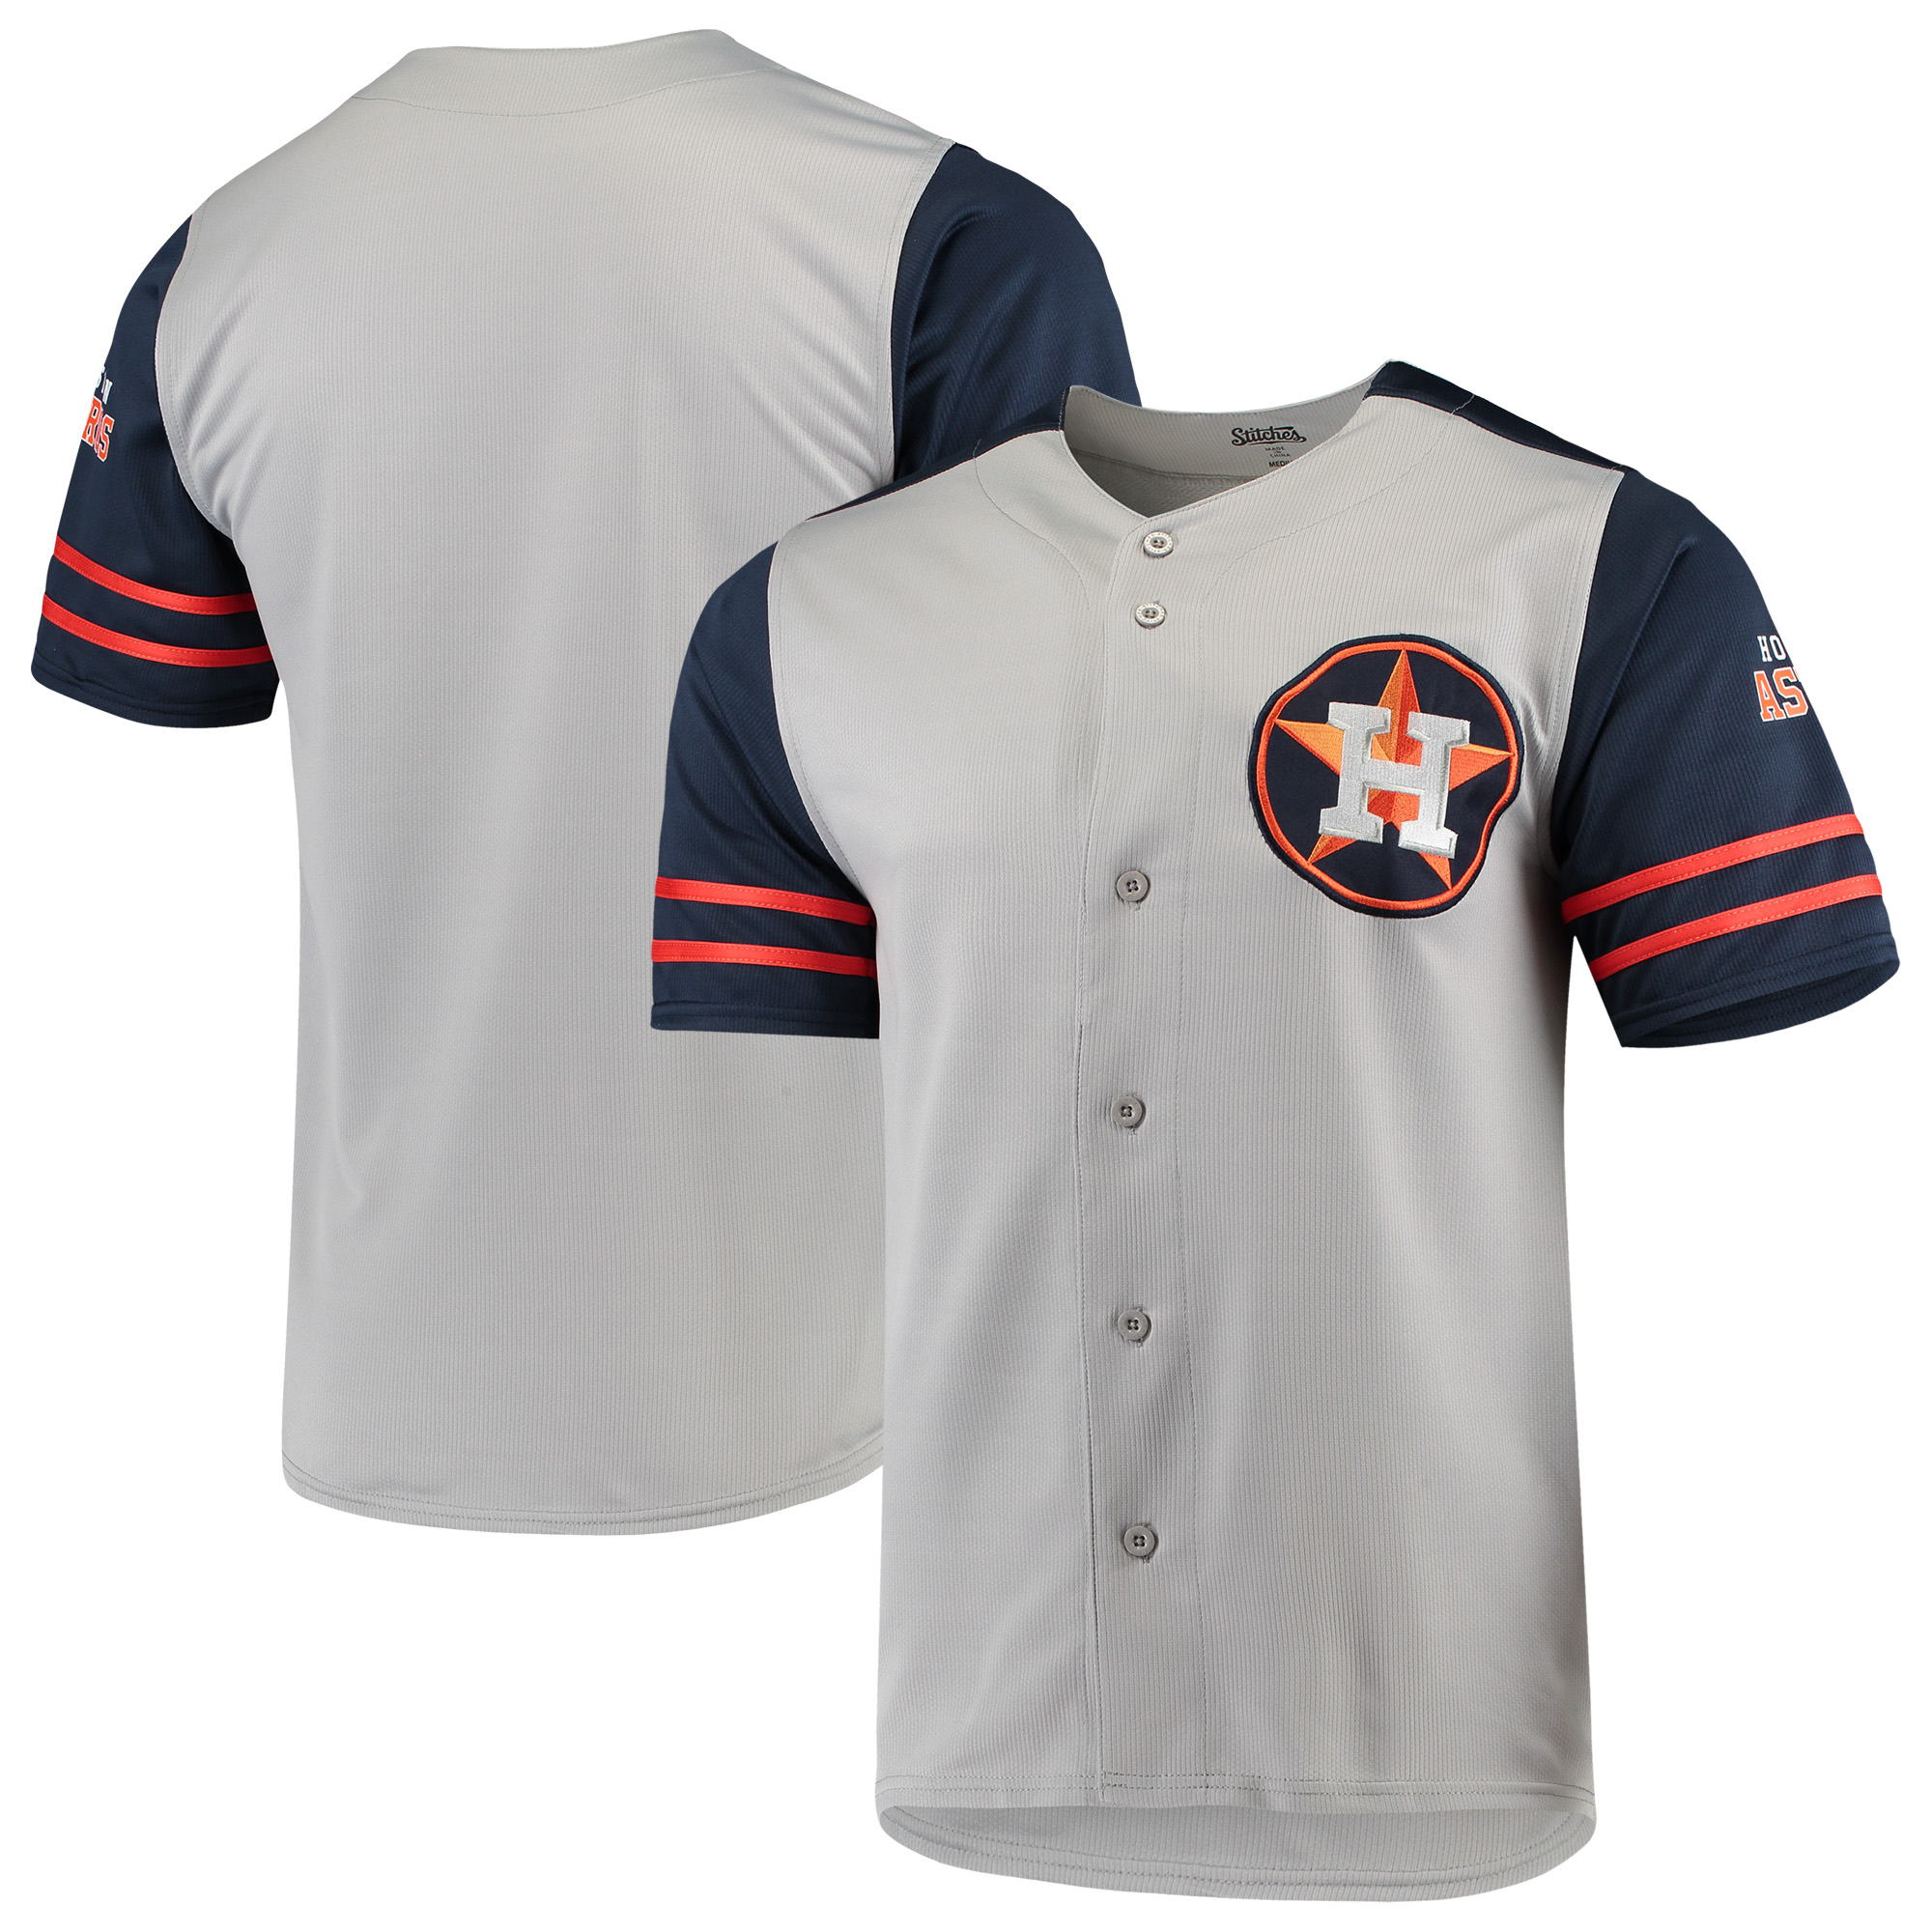 Houston Astros Stitches Button-Up Jersey - Gray/Navy